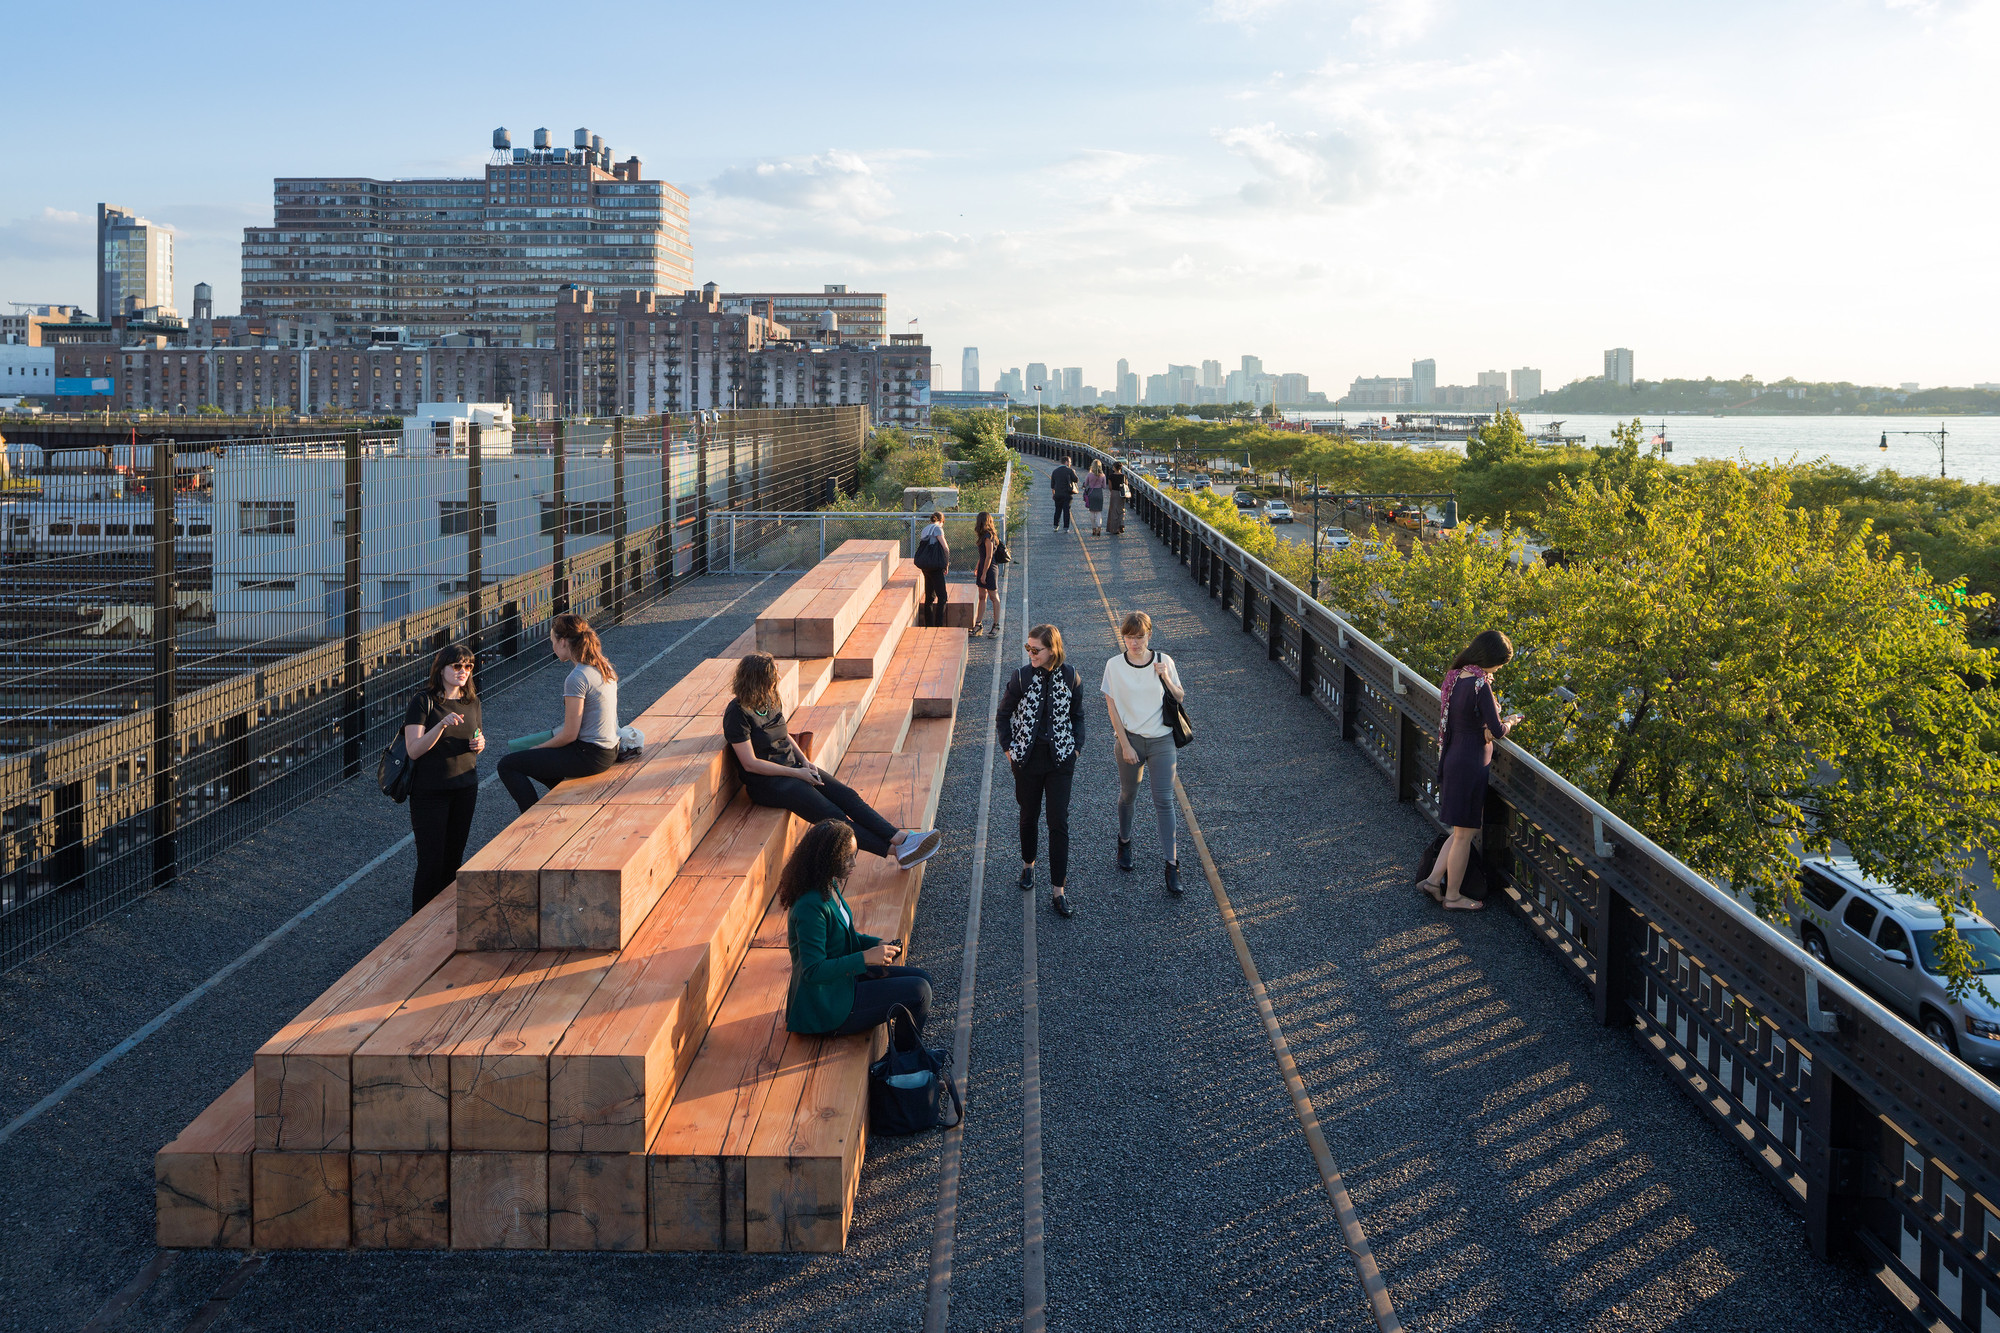 Gallery of Take a Walk on the High Line with Iwan Baan - 14